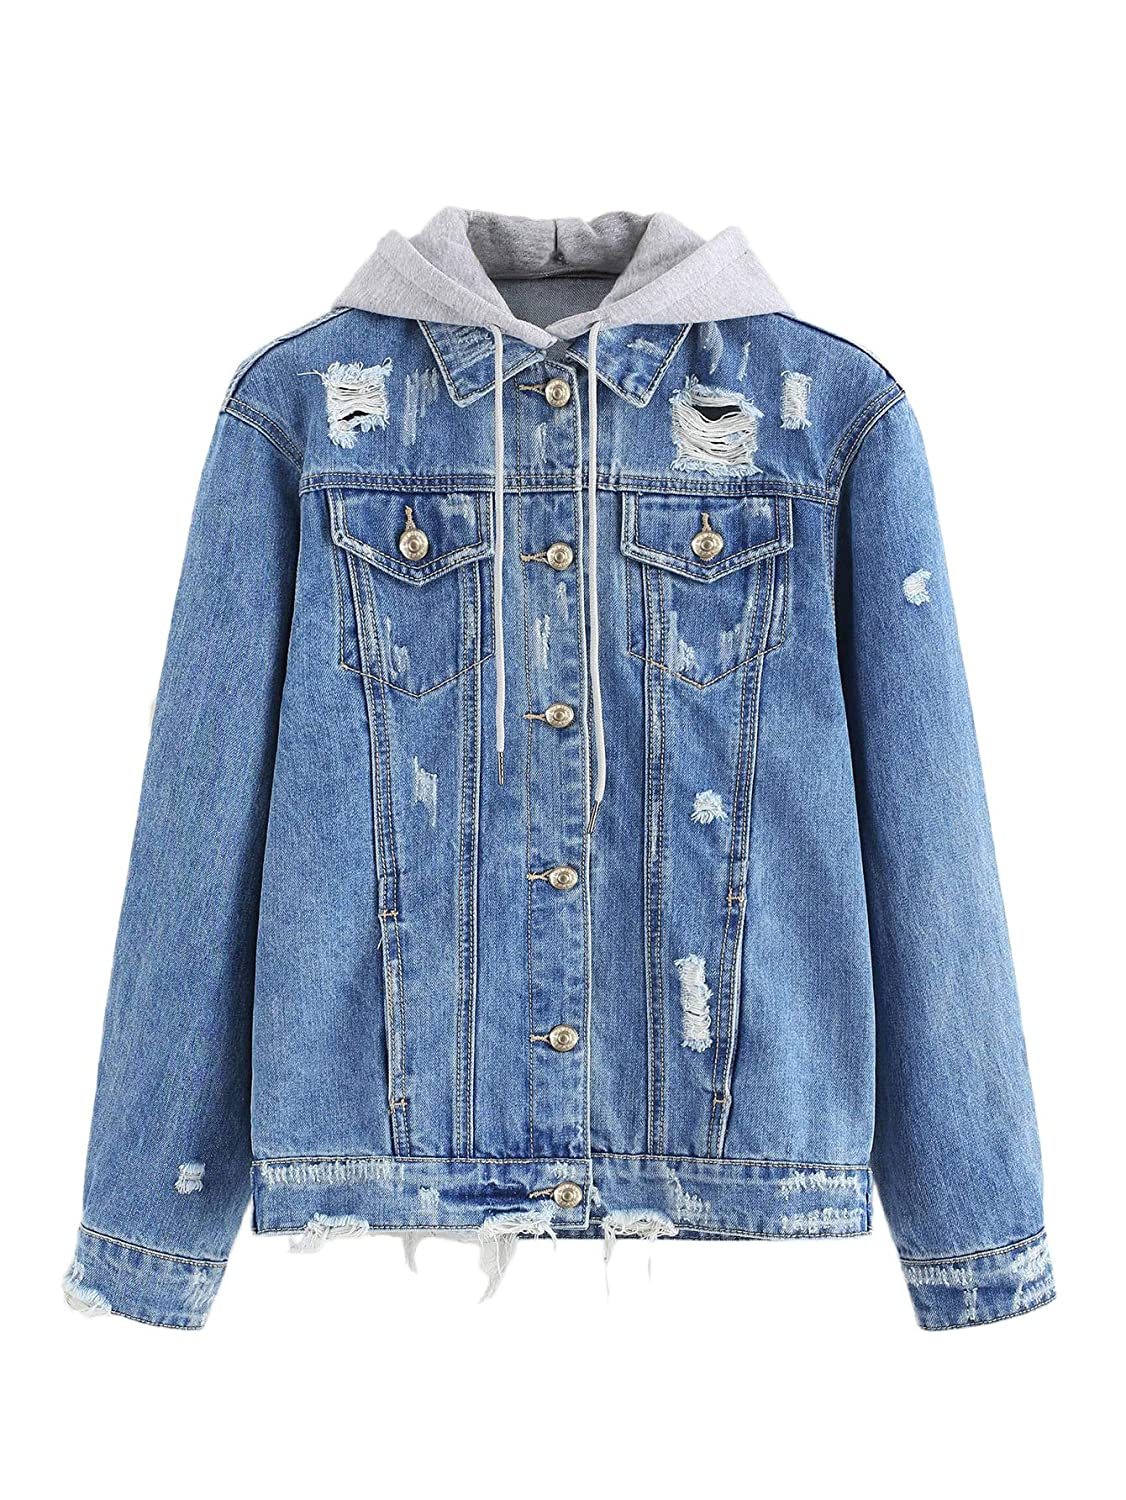 bluee Floerns Women's Washed Distressed Button Front Hooded Jean Denim Jacket